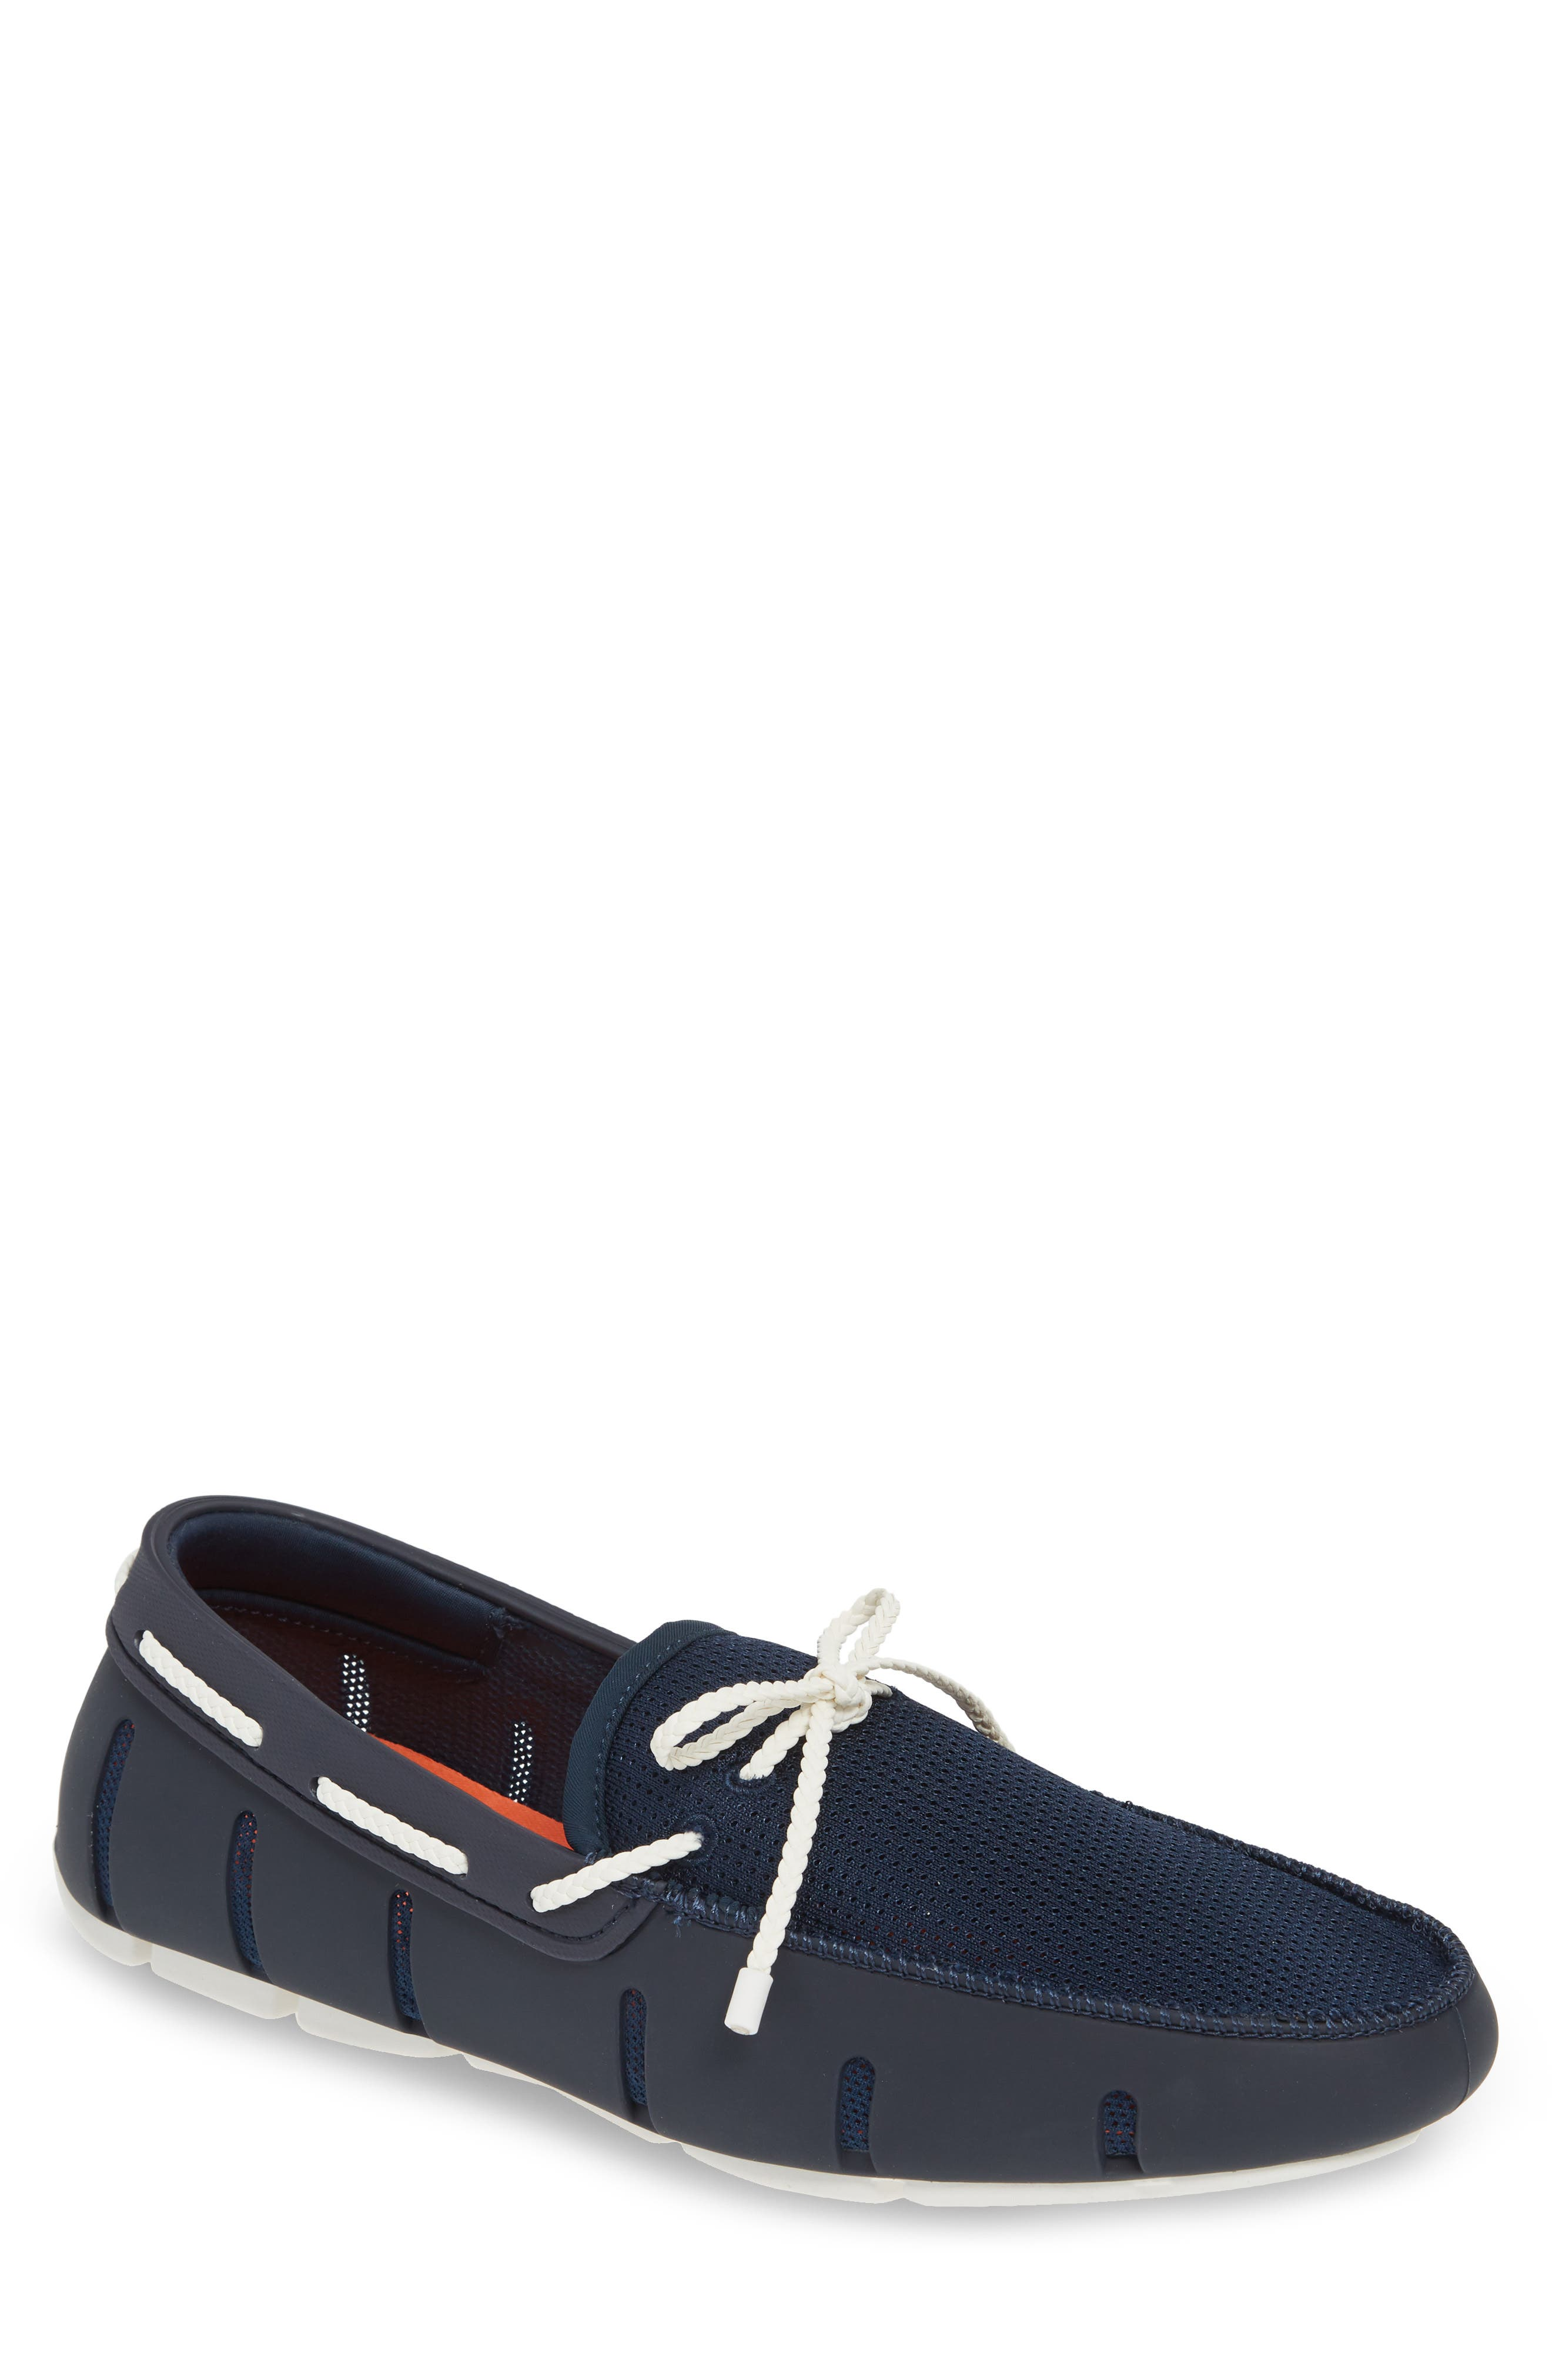 SWIMS, Lace Loafer, Main thumbnail 1, color, DARK NAVY/ WHITE